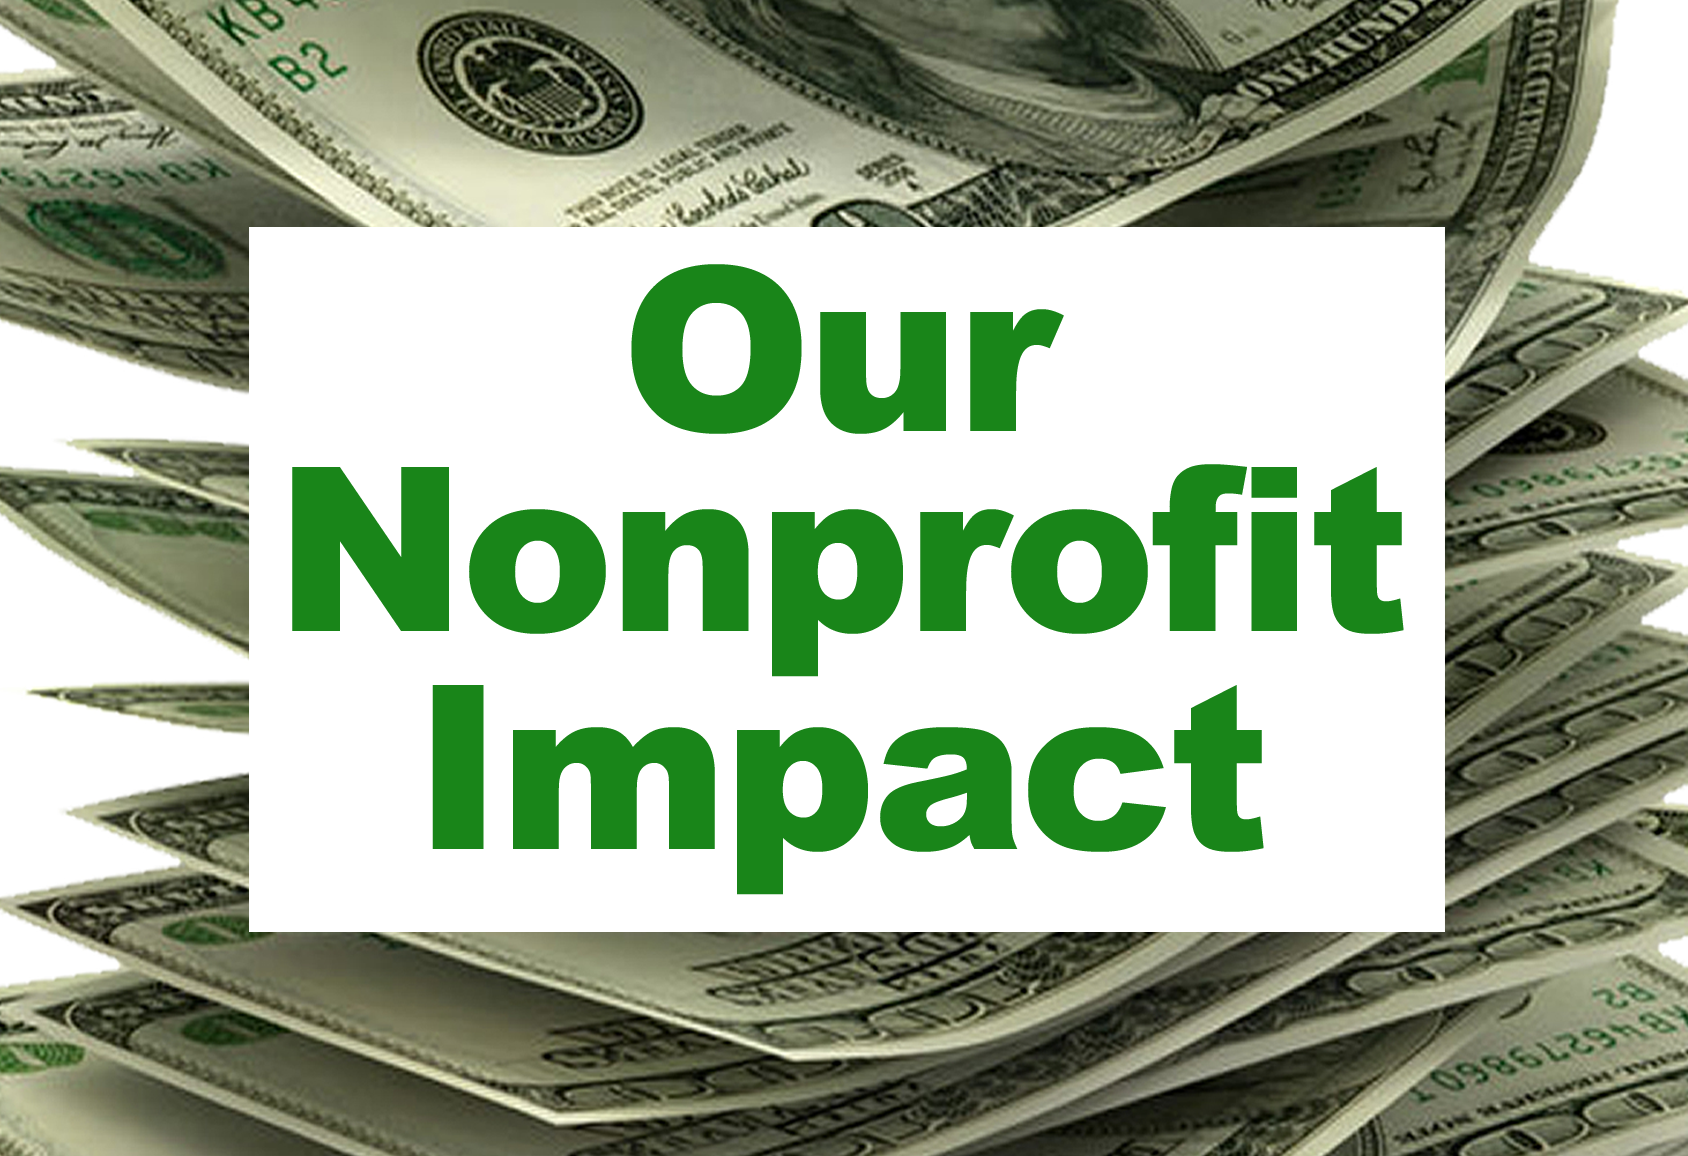 Our_NonProfit_Impact_HellerFundraisingGroup_website.png